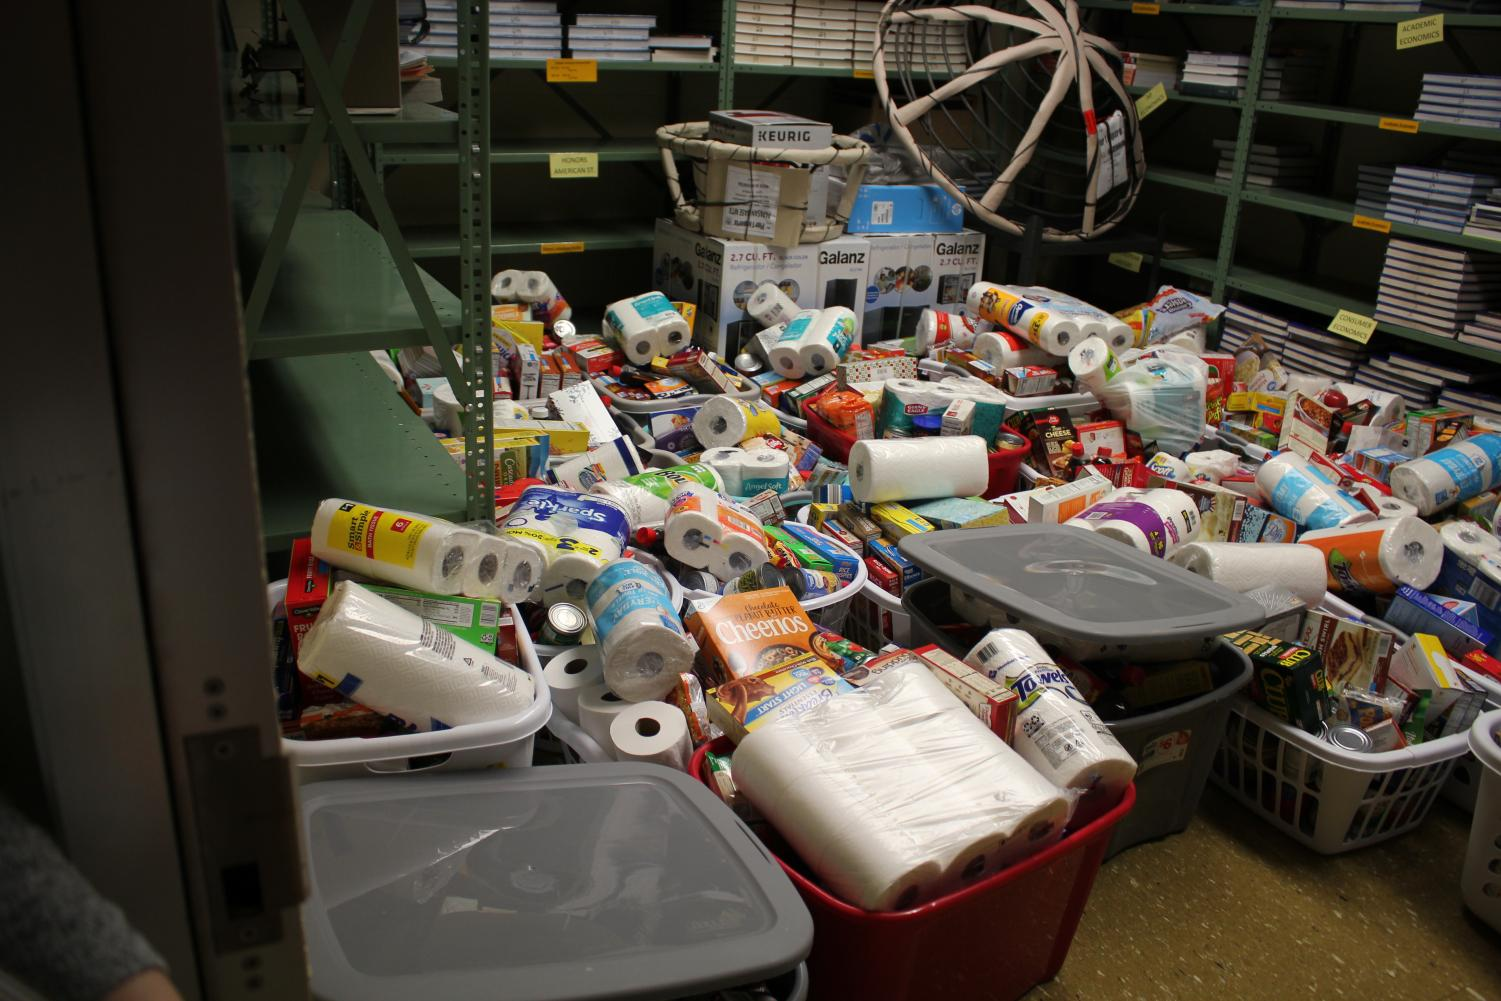 Many teachers and students contributed to the holiday food drive.  Organizers provided a list of items needed that were placed in laundry baskets.